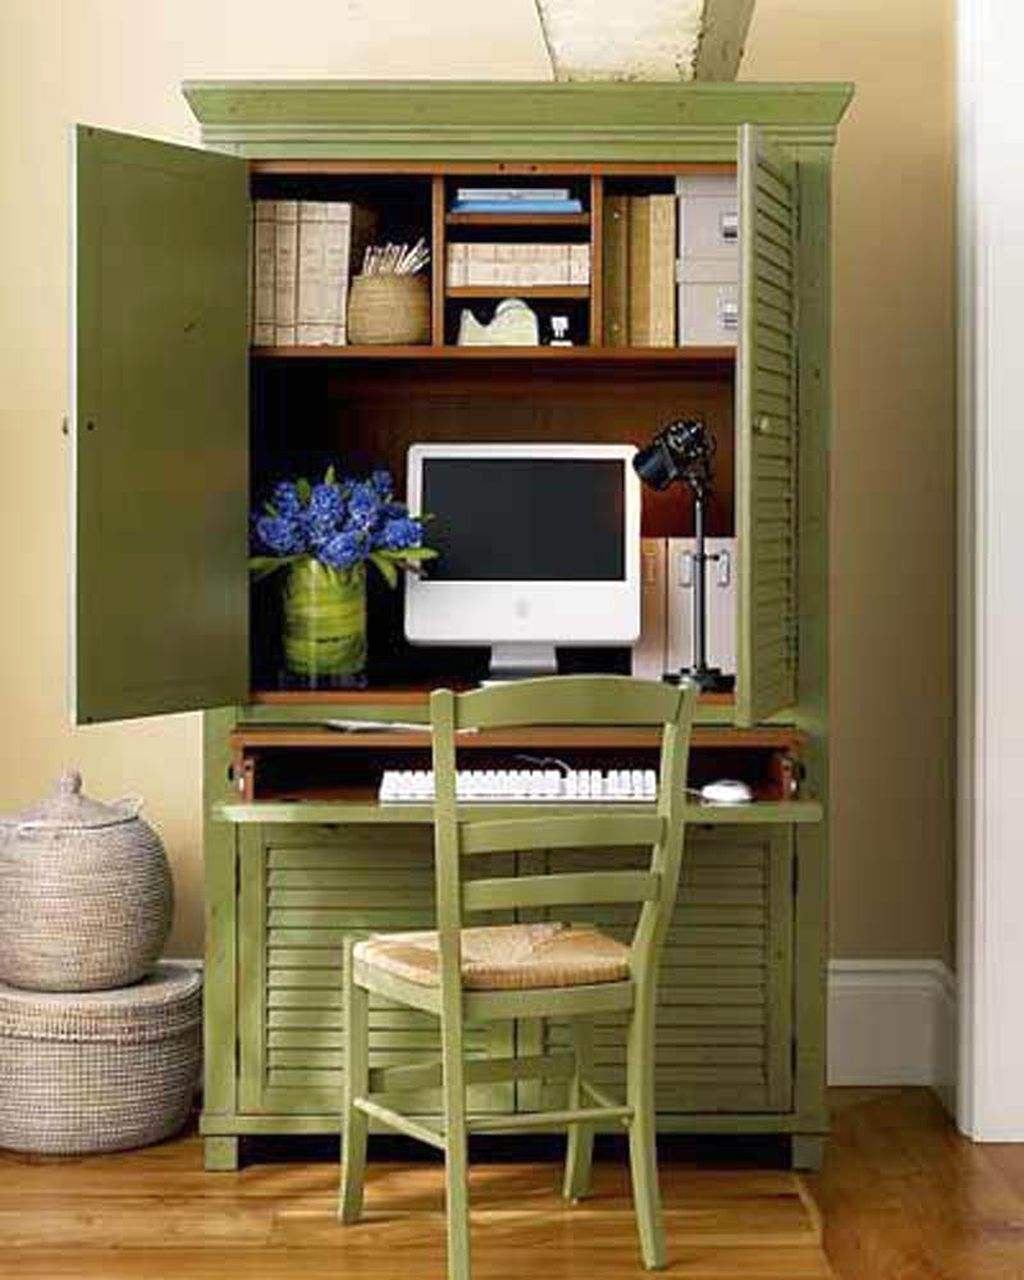 Green cupboard home office design ideas for small spaces for Office remodel ideas